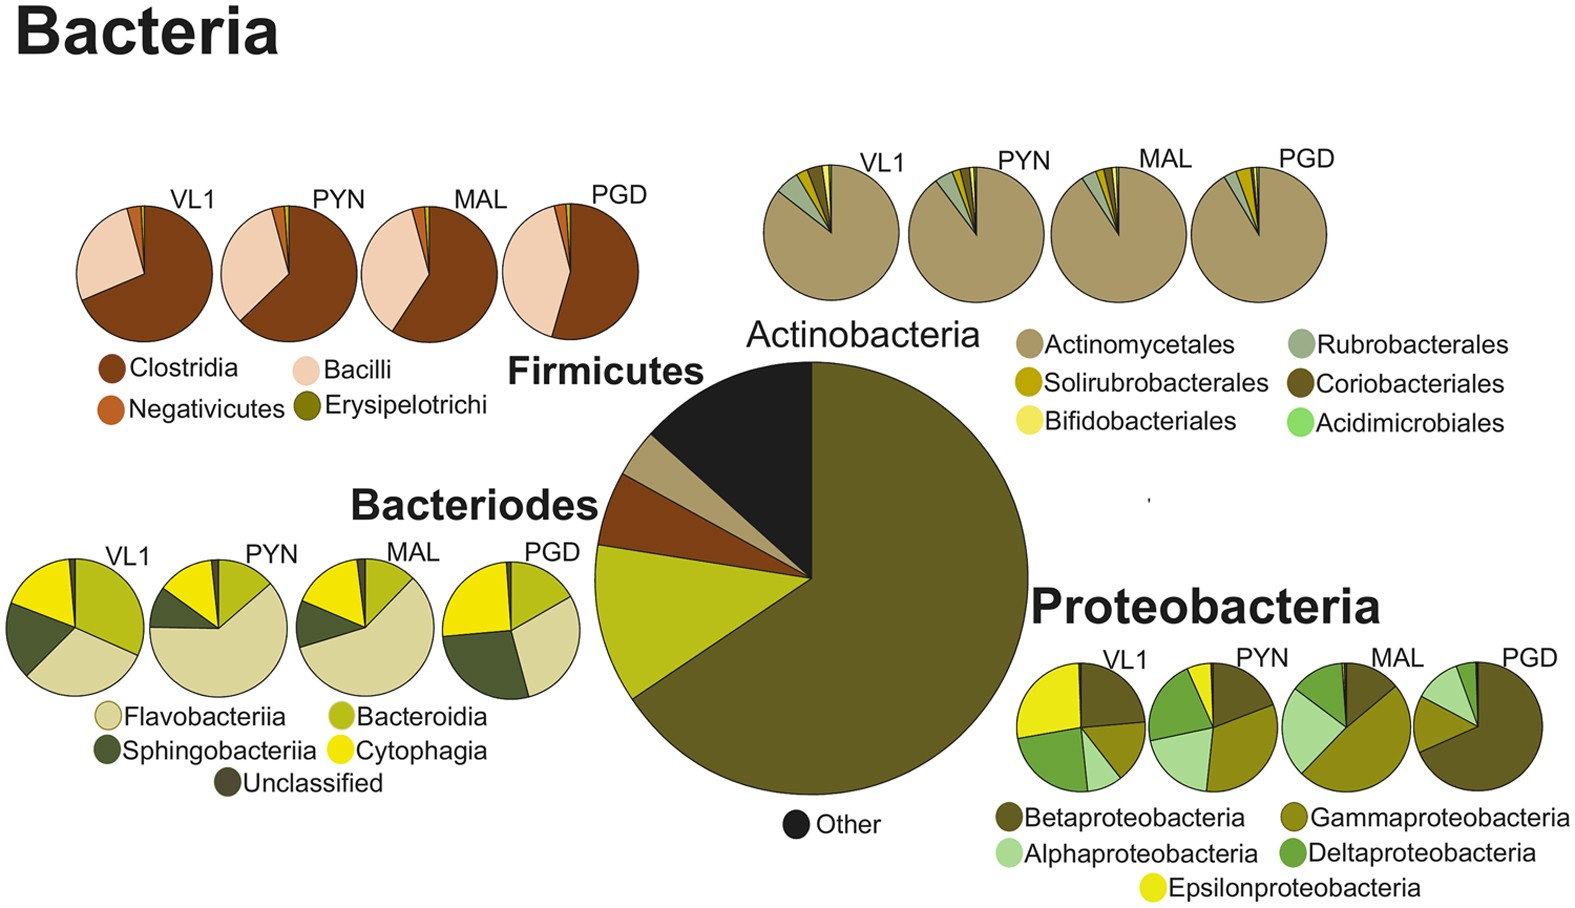 Searching For Signatures Across Microbial Communities Metagenomic Sp Reguler Axis Hitz Analysis Of Soil Samples From Mangrove And Other Ecosystems Scientific Reports